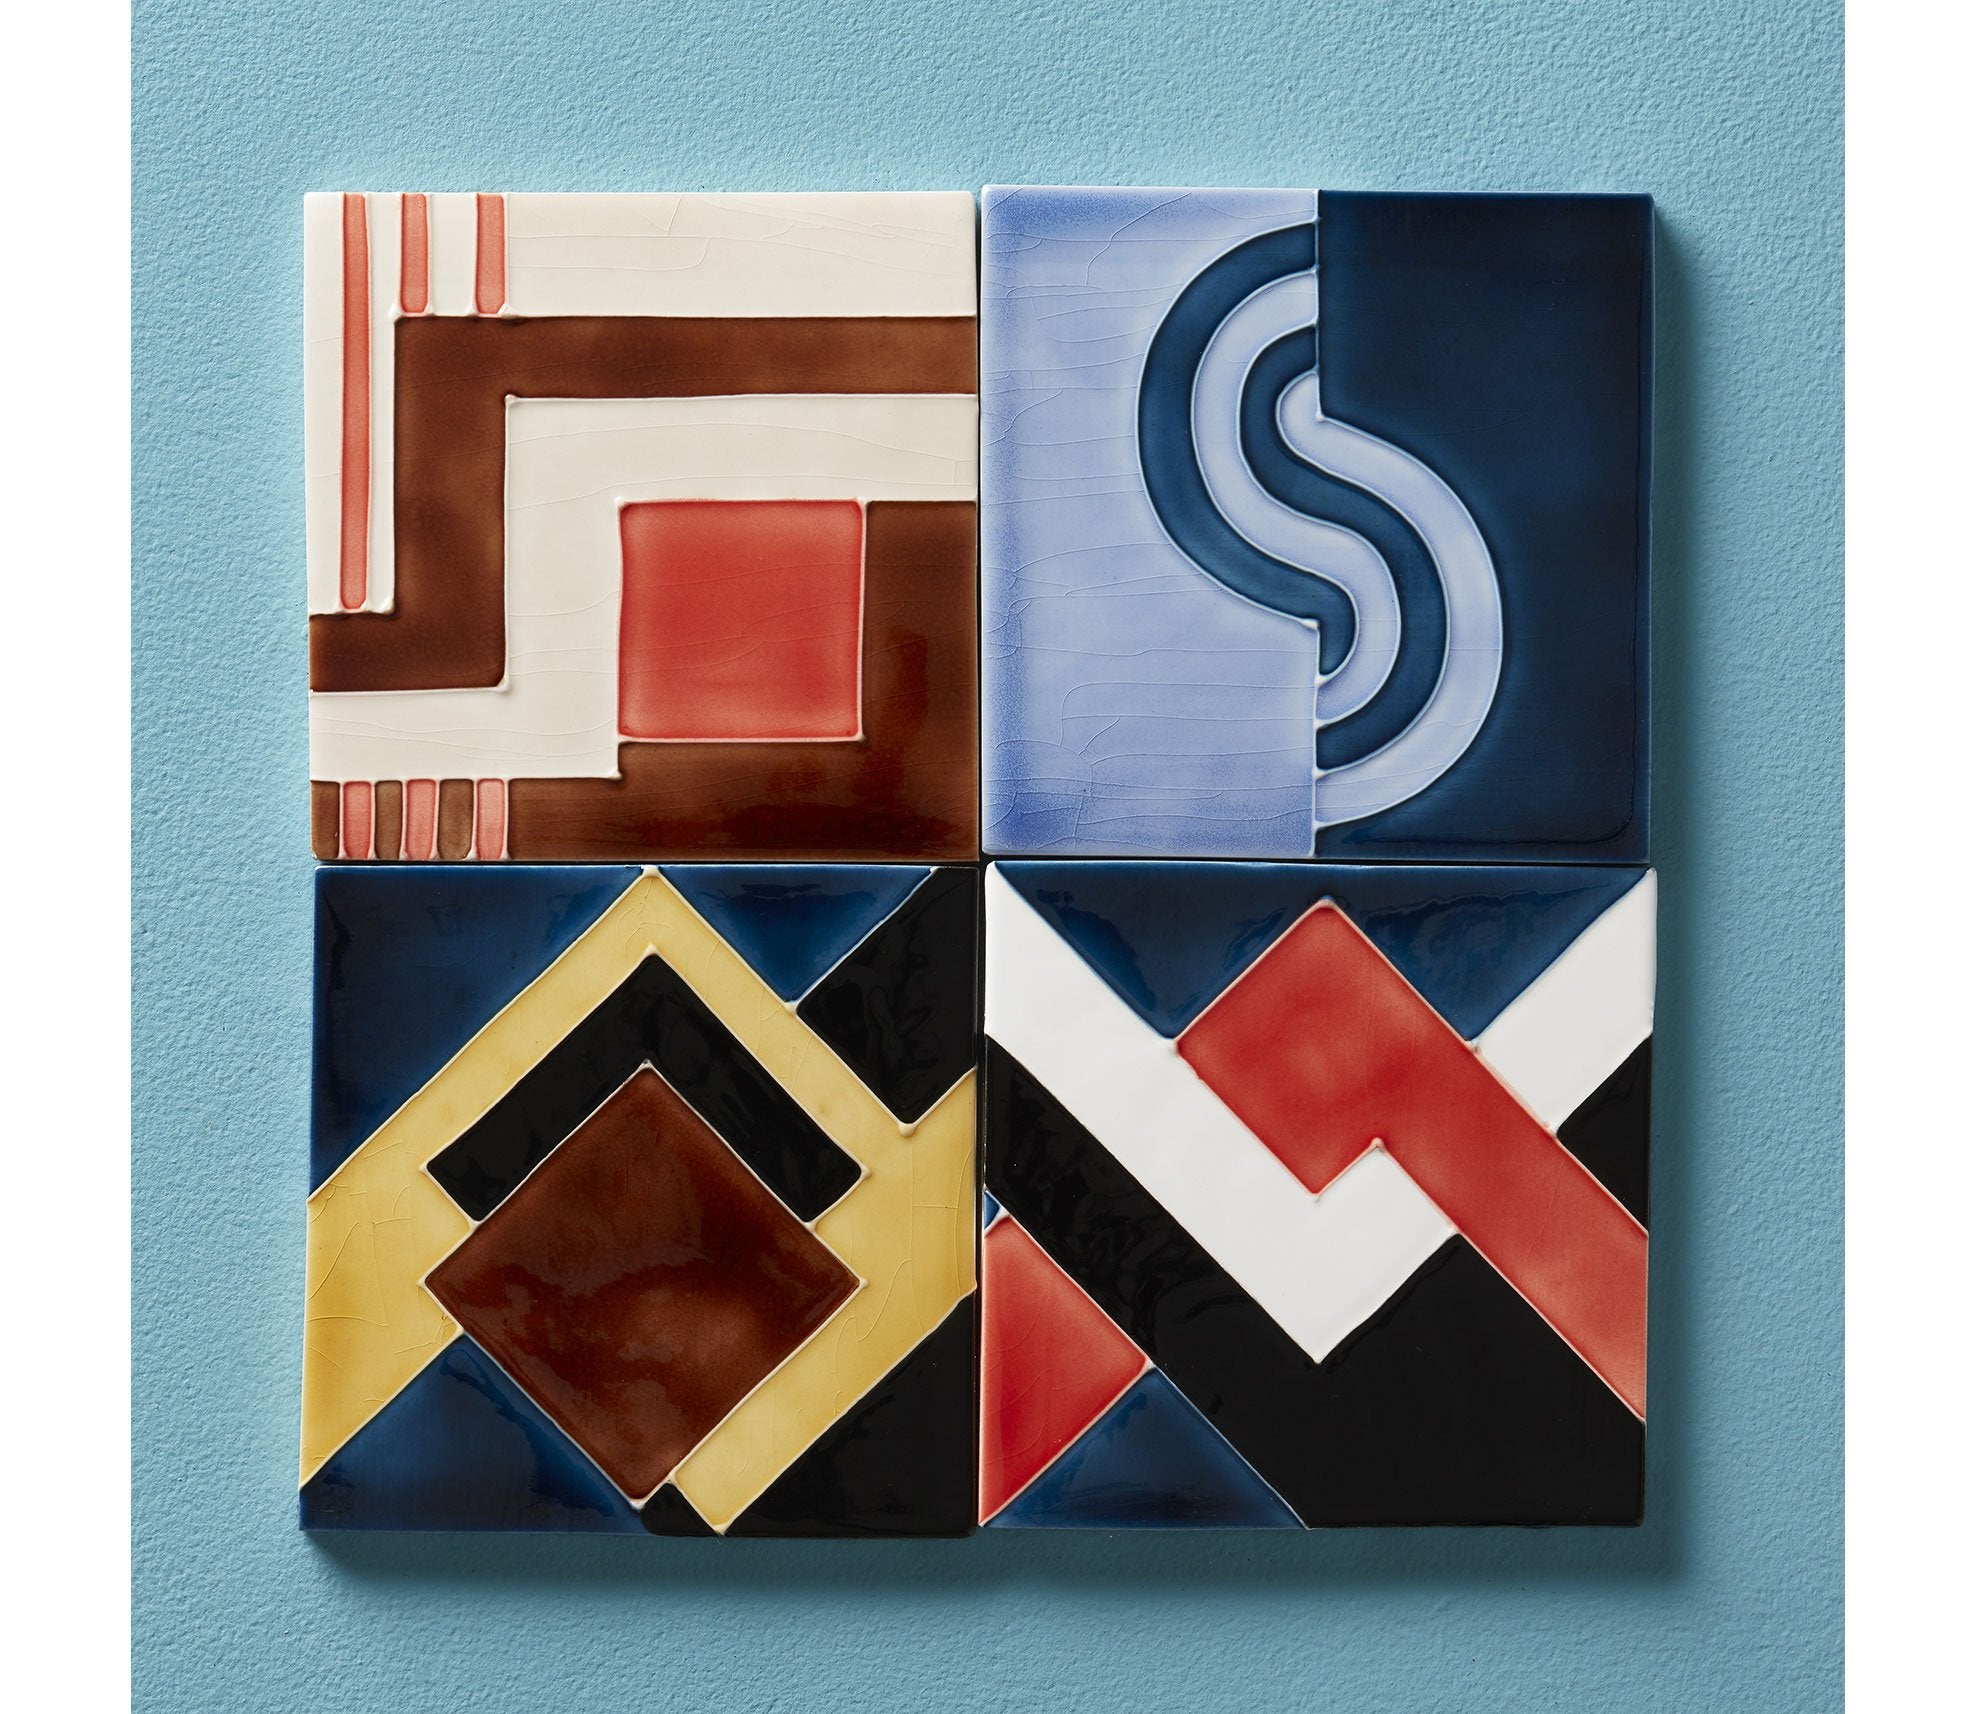 Hanley Tube Lined Decorative Tiles Product Image 59